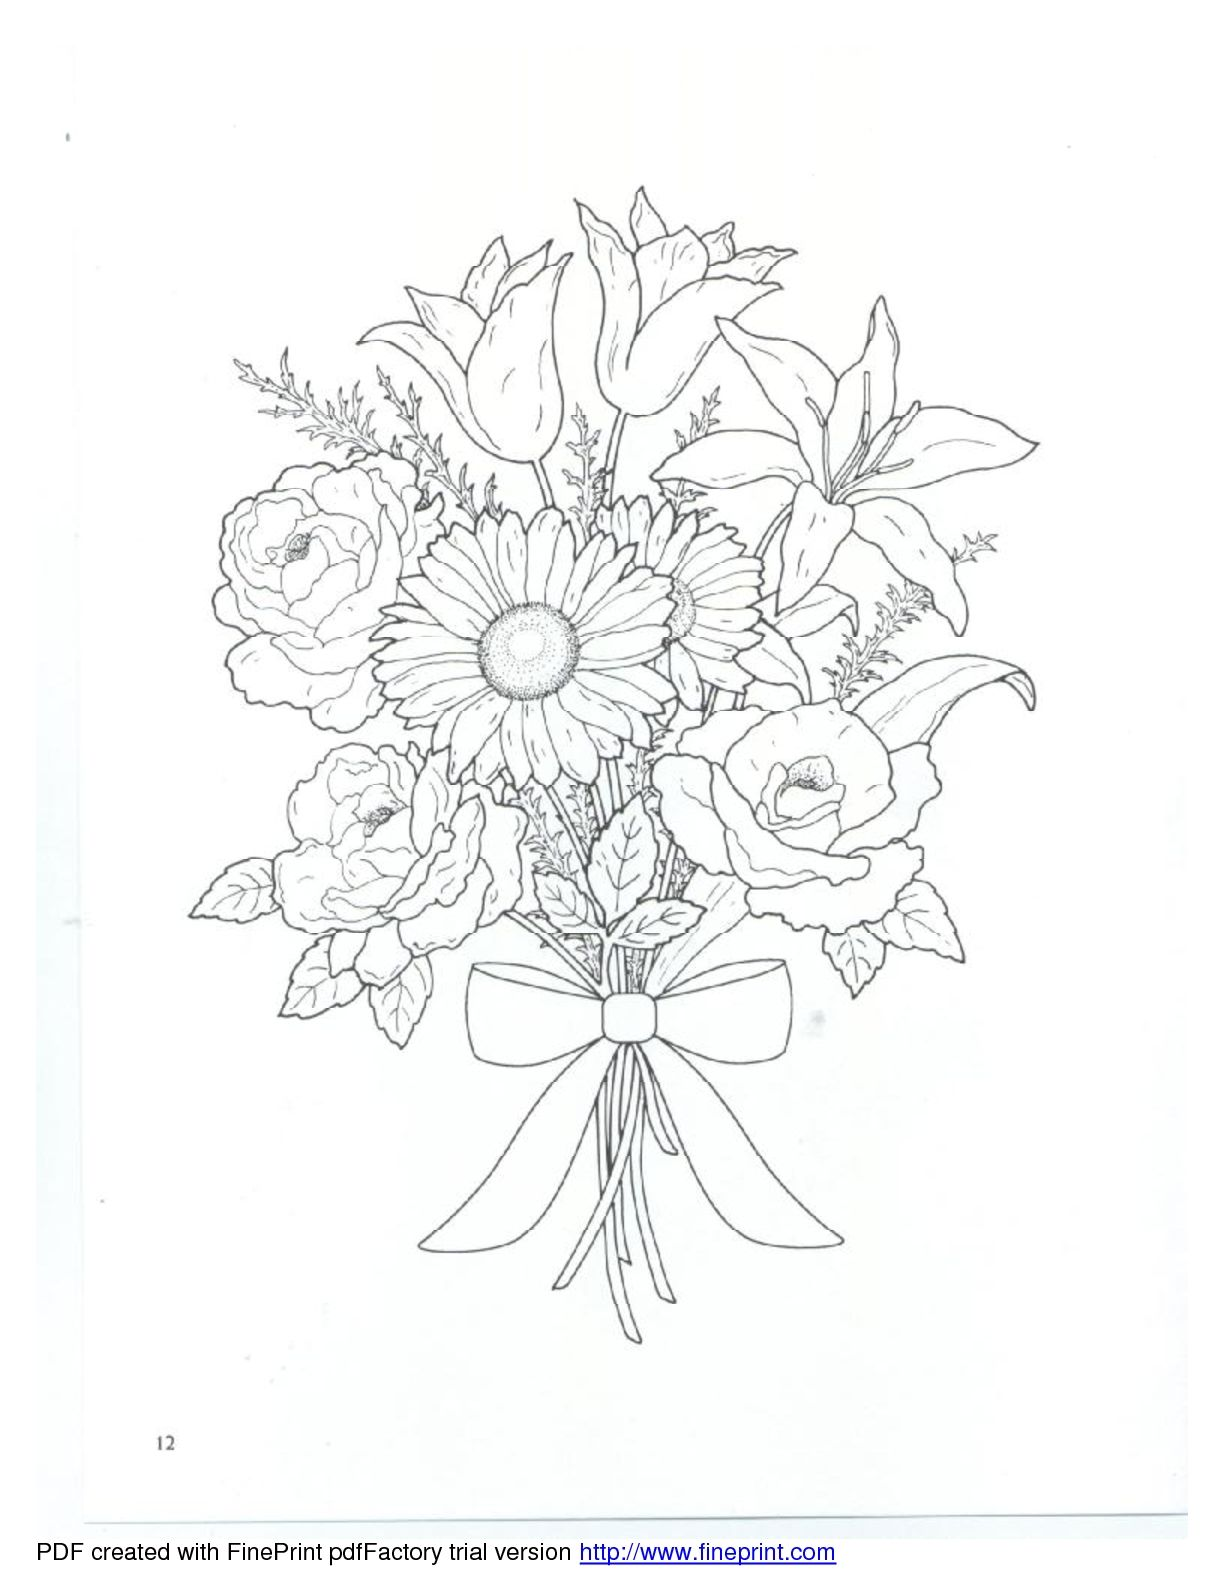 Dover - Floral Bouquets Coloring Book | Dover Coloring | Pinterest ...